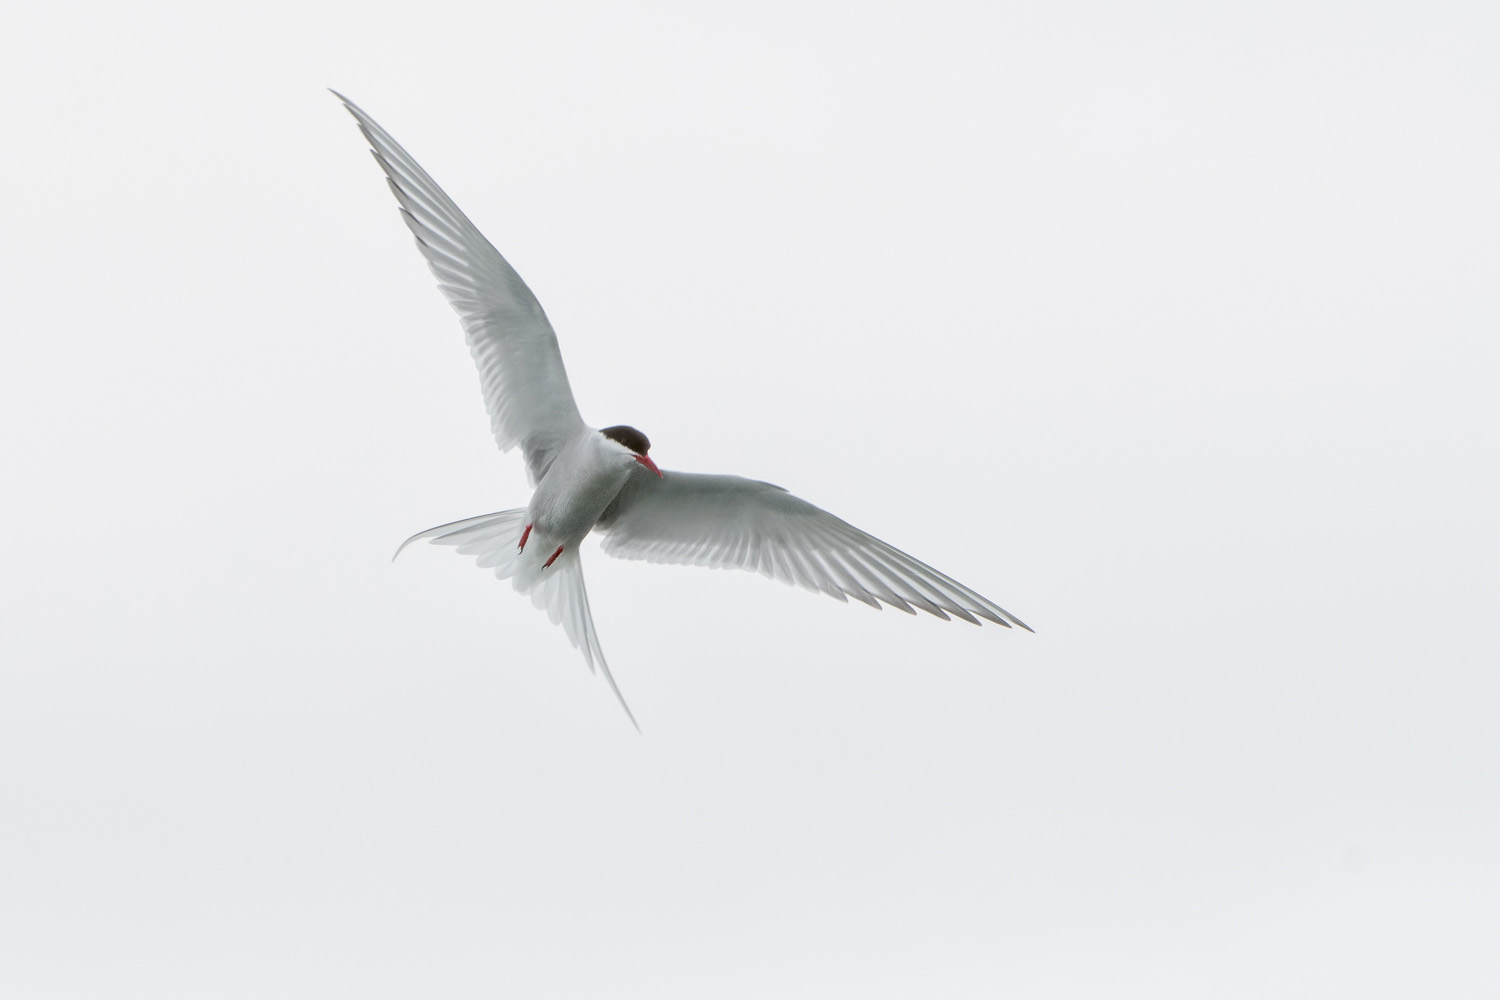 Arctic Tern ( Sterna paradisaea ) Hovering - Iceland